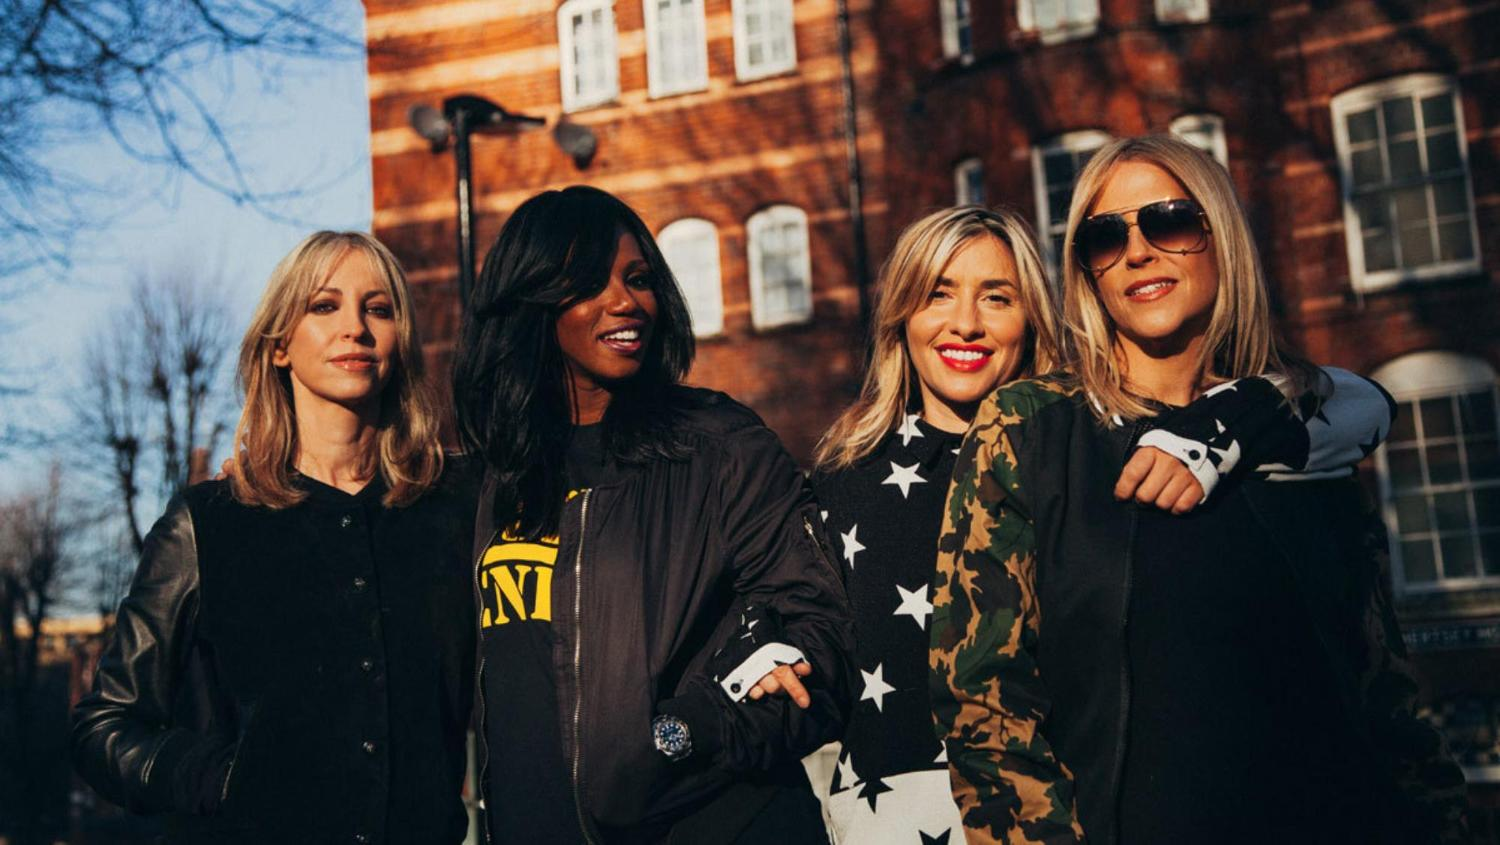 RT @i_D: Exclusive: The Return of @AllSaintsOffic. We get the inside scoop on the reunion: https://t.co/bxyMxYrUDz https://t.co/PqY4IDHmZz